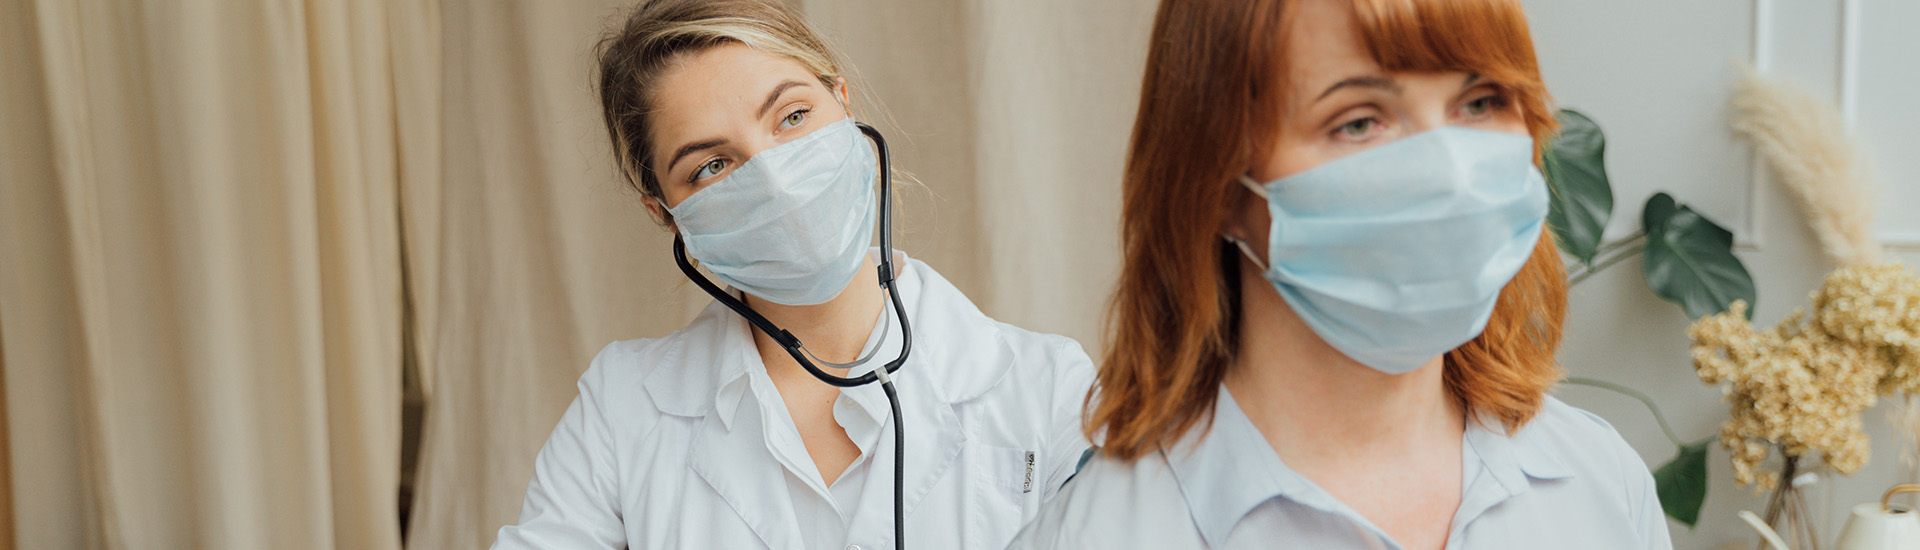 white-coat-doctor-with-patient